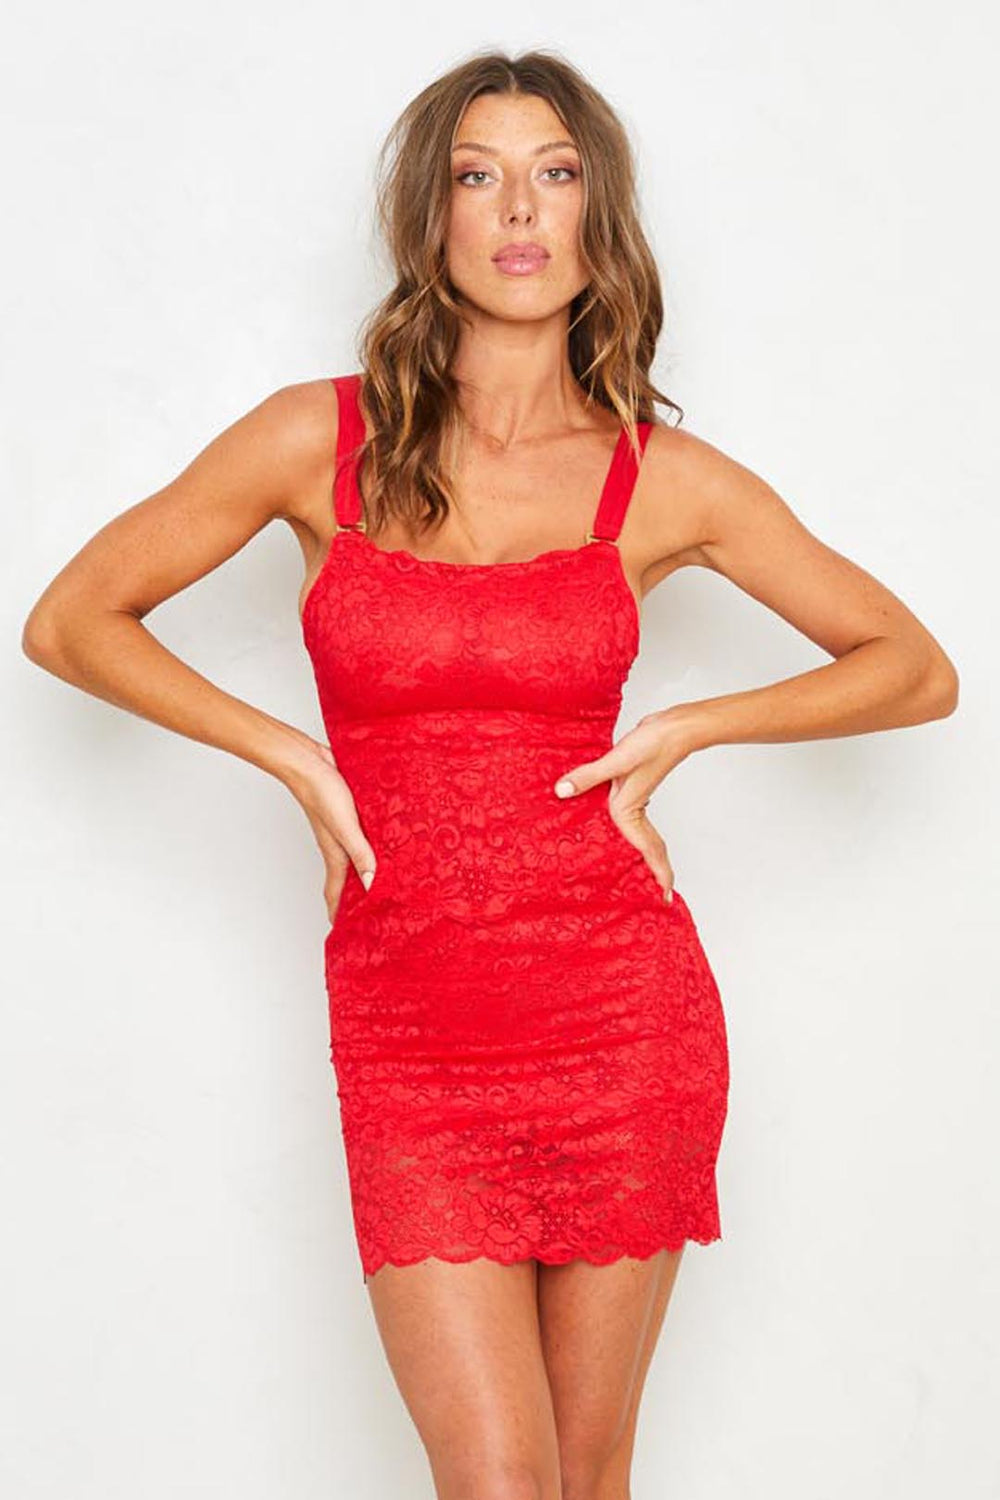 Red Lace Bodycon Dress With Adjustable Straps, Eco-Friendly Machine Washable